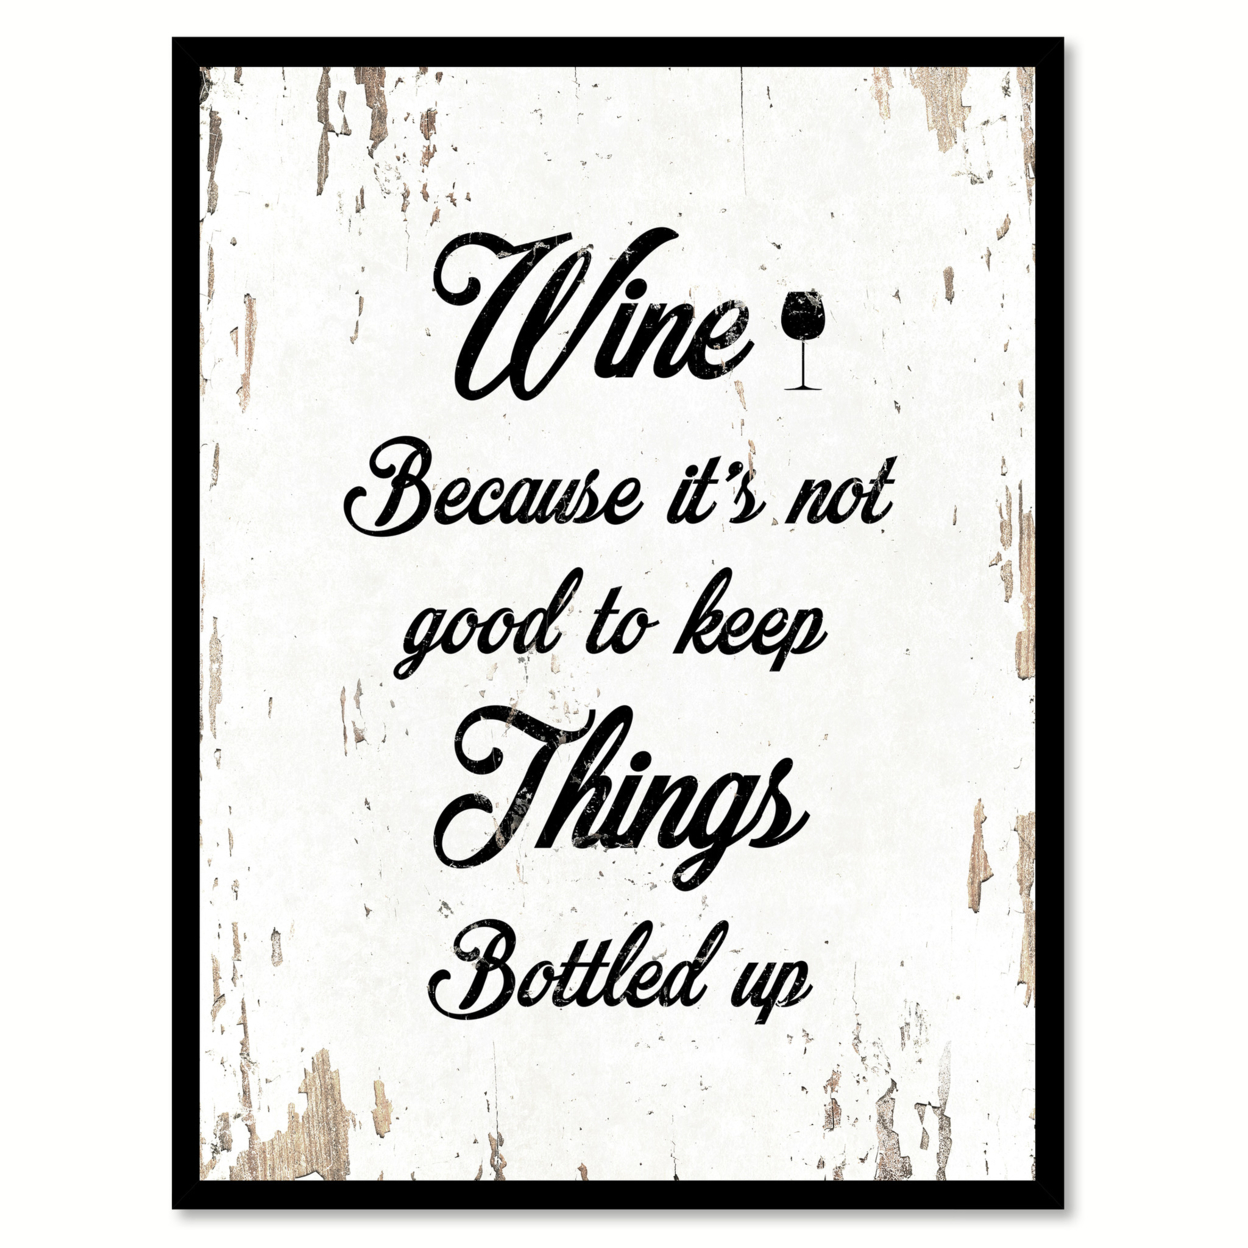 Wine Because Its Not Good To Keep Things Bottle Up Saying Canvas Print With Picture Frame Home Decor Wall Art Gifts